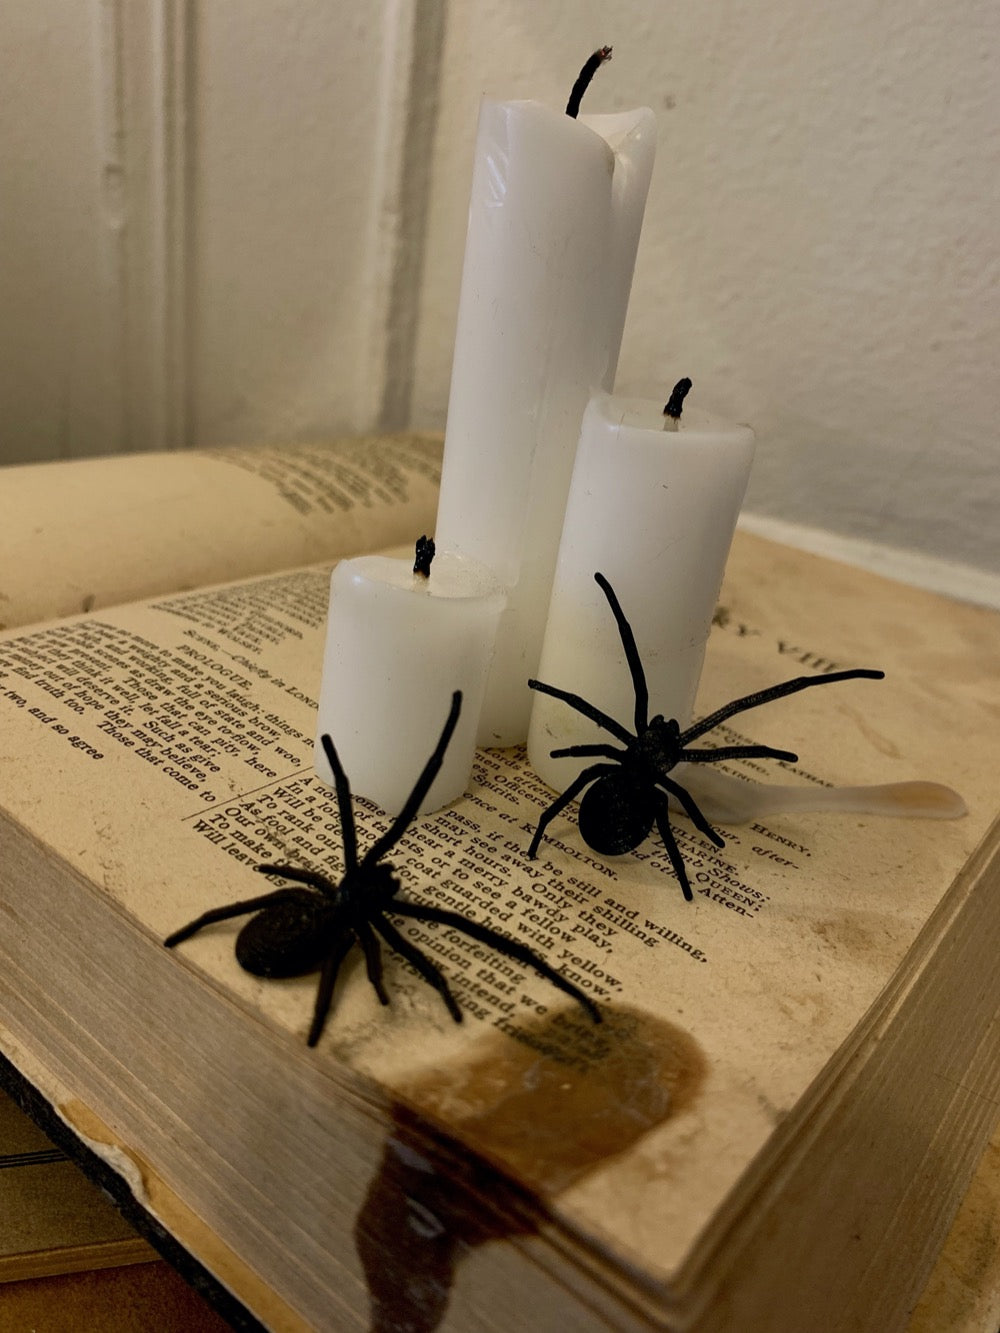 Shown are two black spider earrings that are realistic in their shape. They have long front legs that look like they are searching for their next bit of prey. They are pictured crawling up an old book with candles on top to create a spooky Halloween scene.